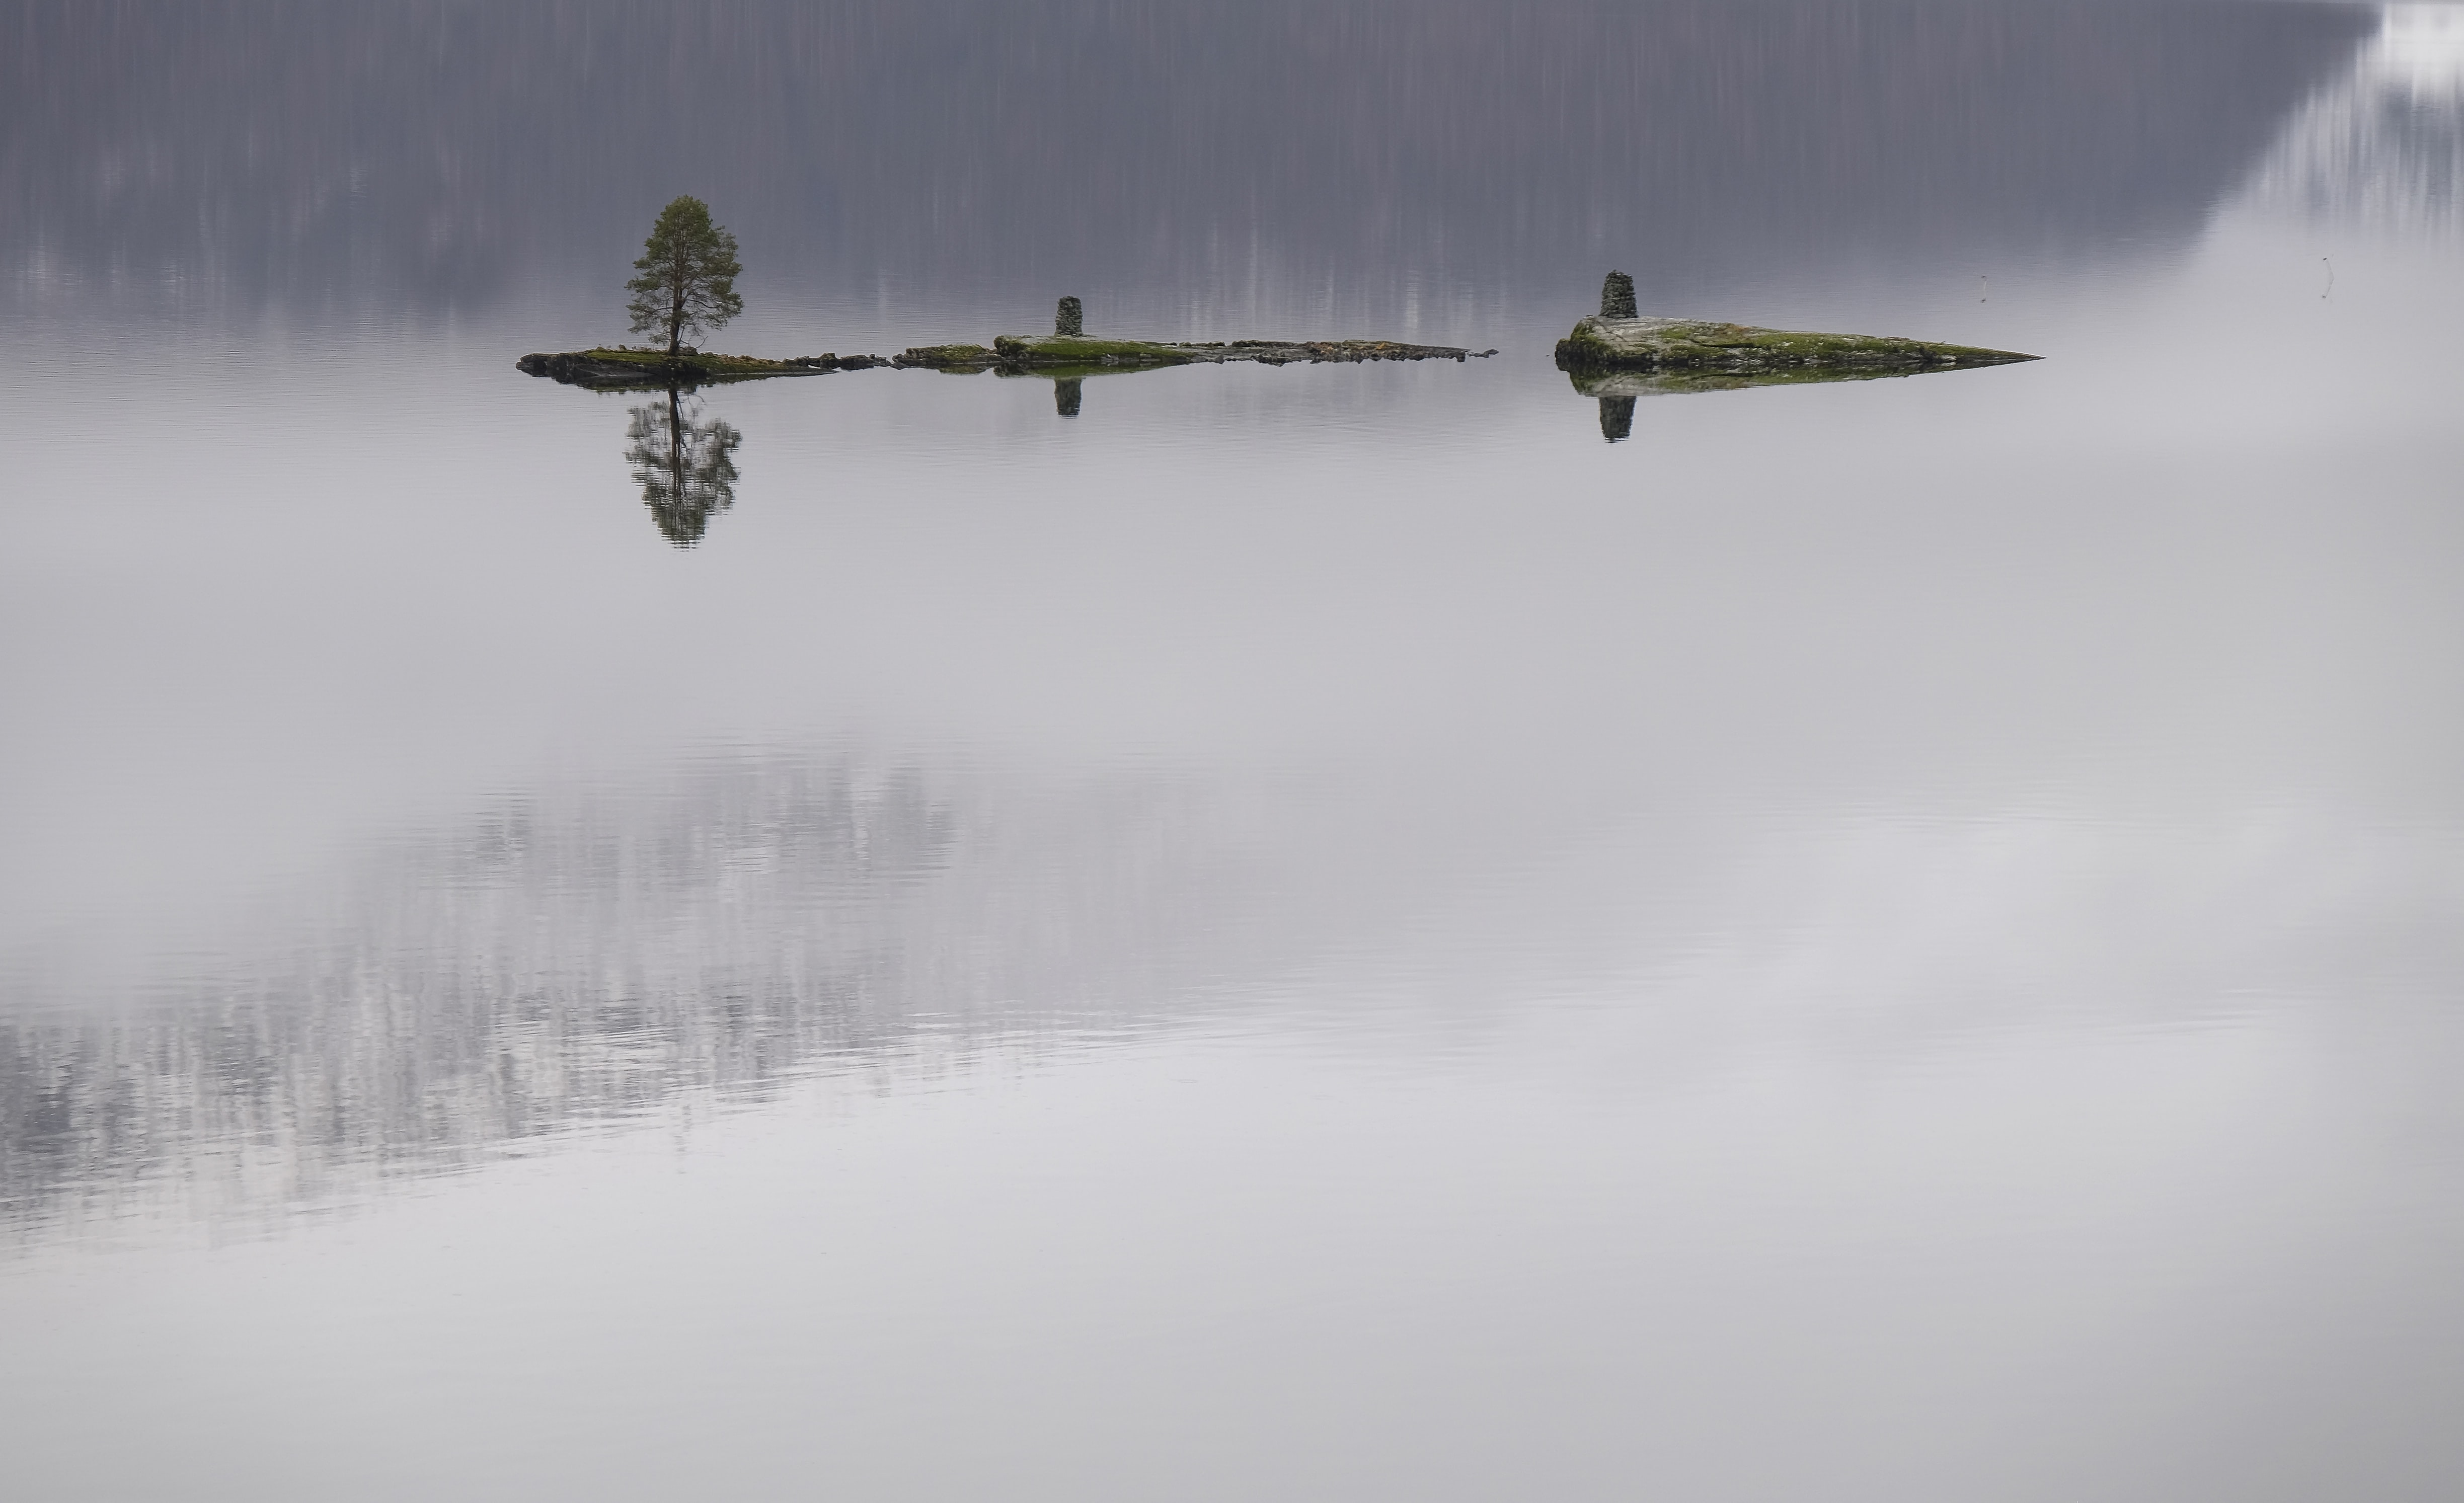 Panoramic shot of a single tree on a tiny island, in a foggy lake.